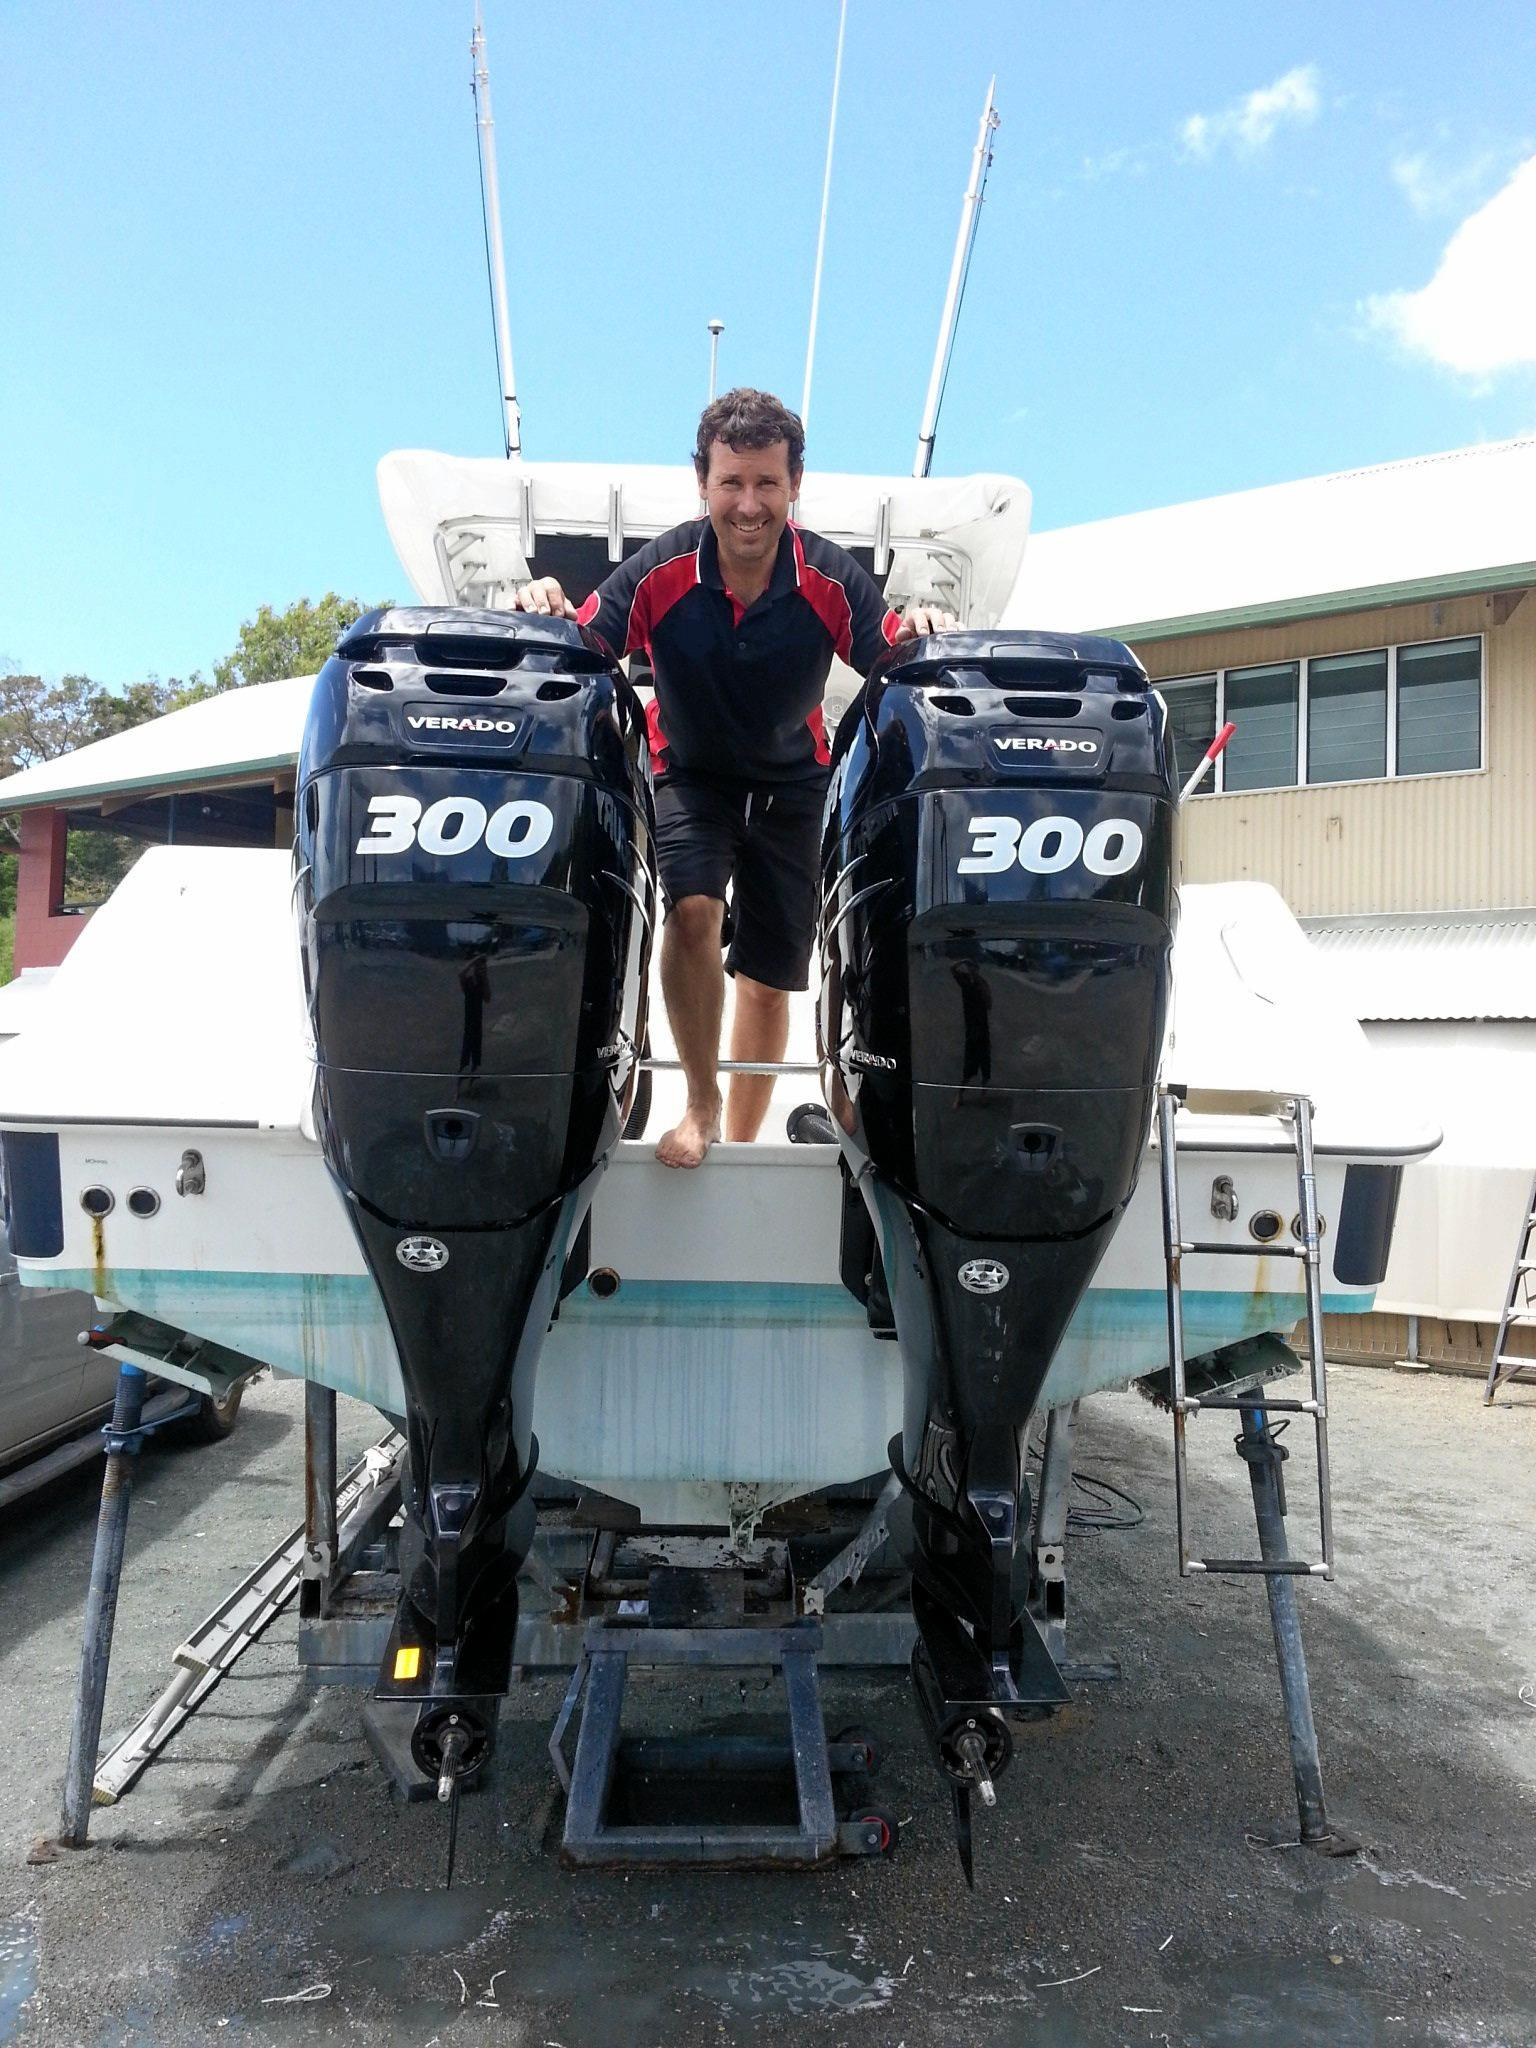 SELF-PROPELLED: Glen Sainsbury has powered into business and started his own marine repair service with his partner of 12-years, Lisa Connor.